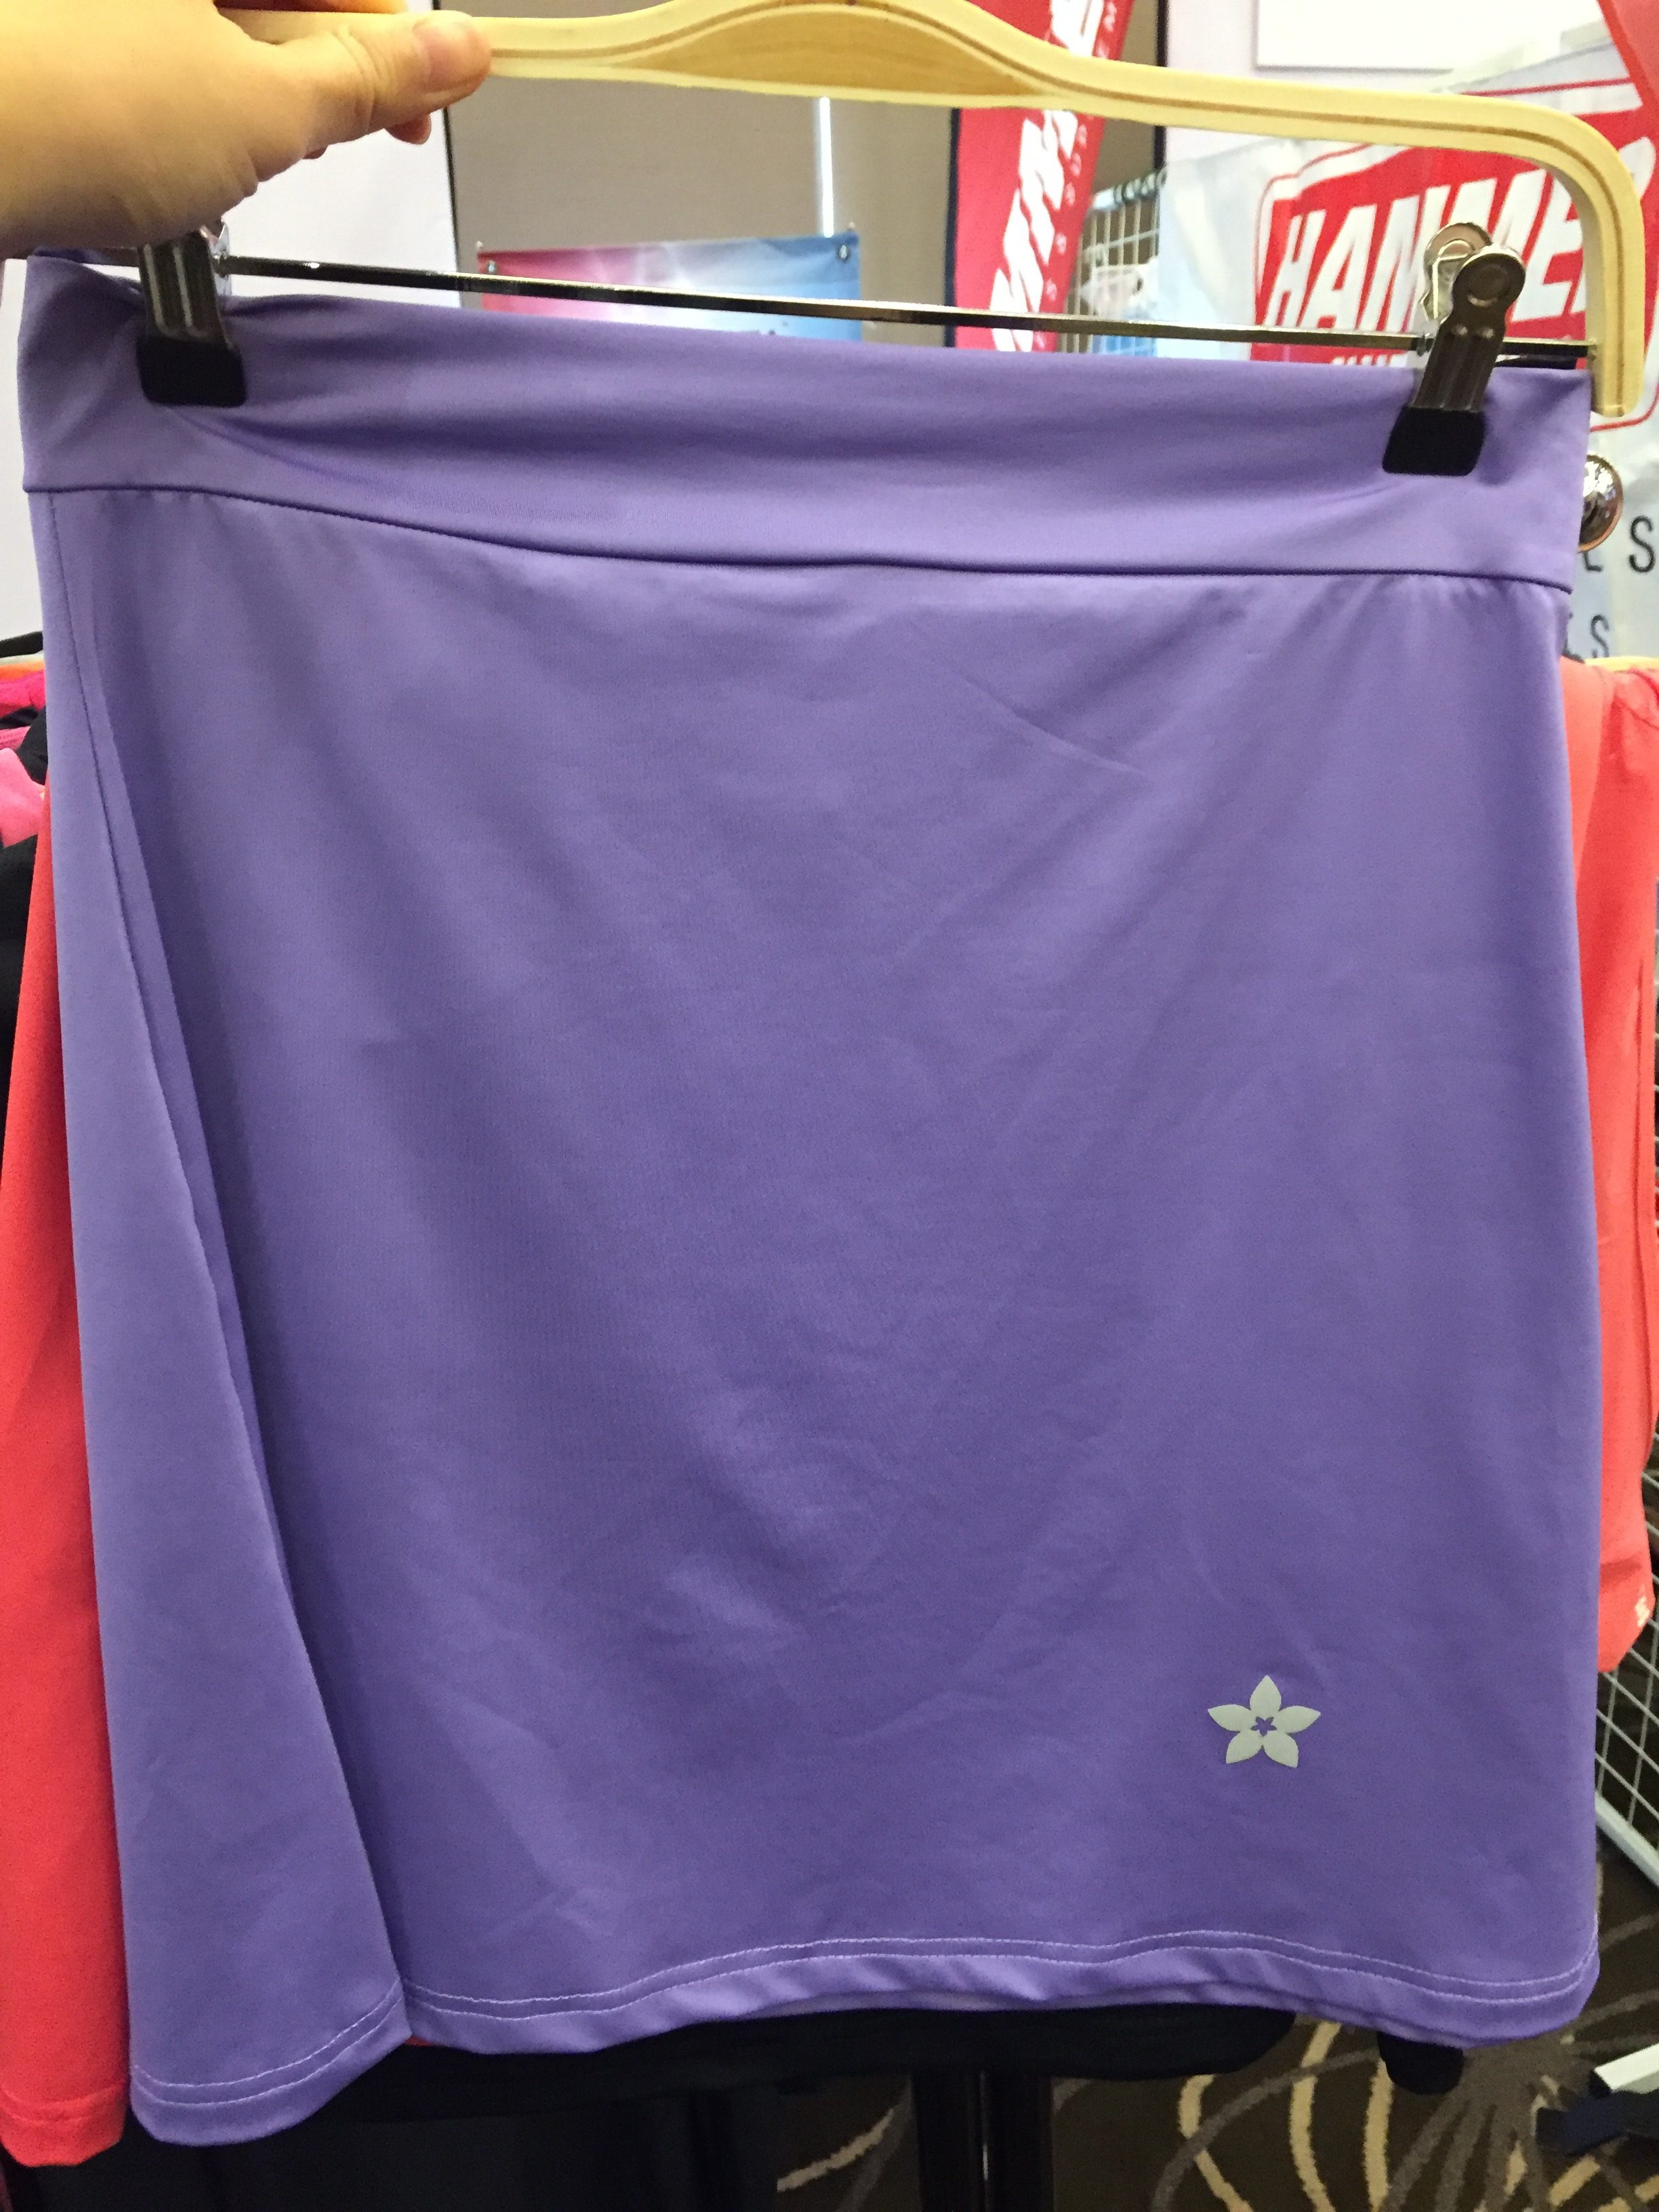 Dropped by Nashata's booth to check out the new EZ skirt